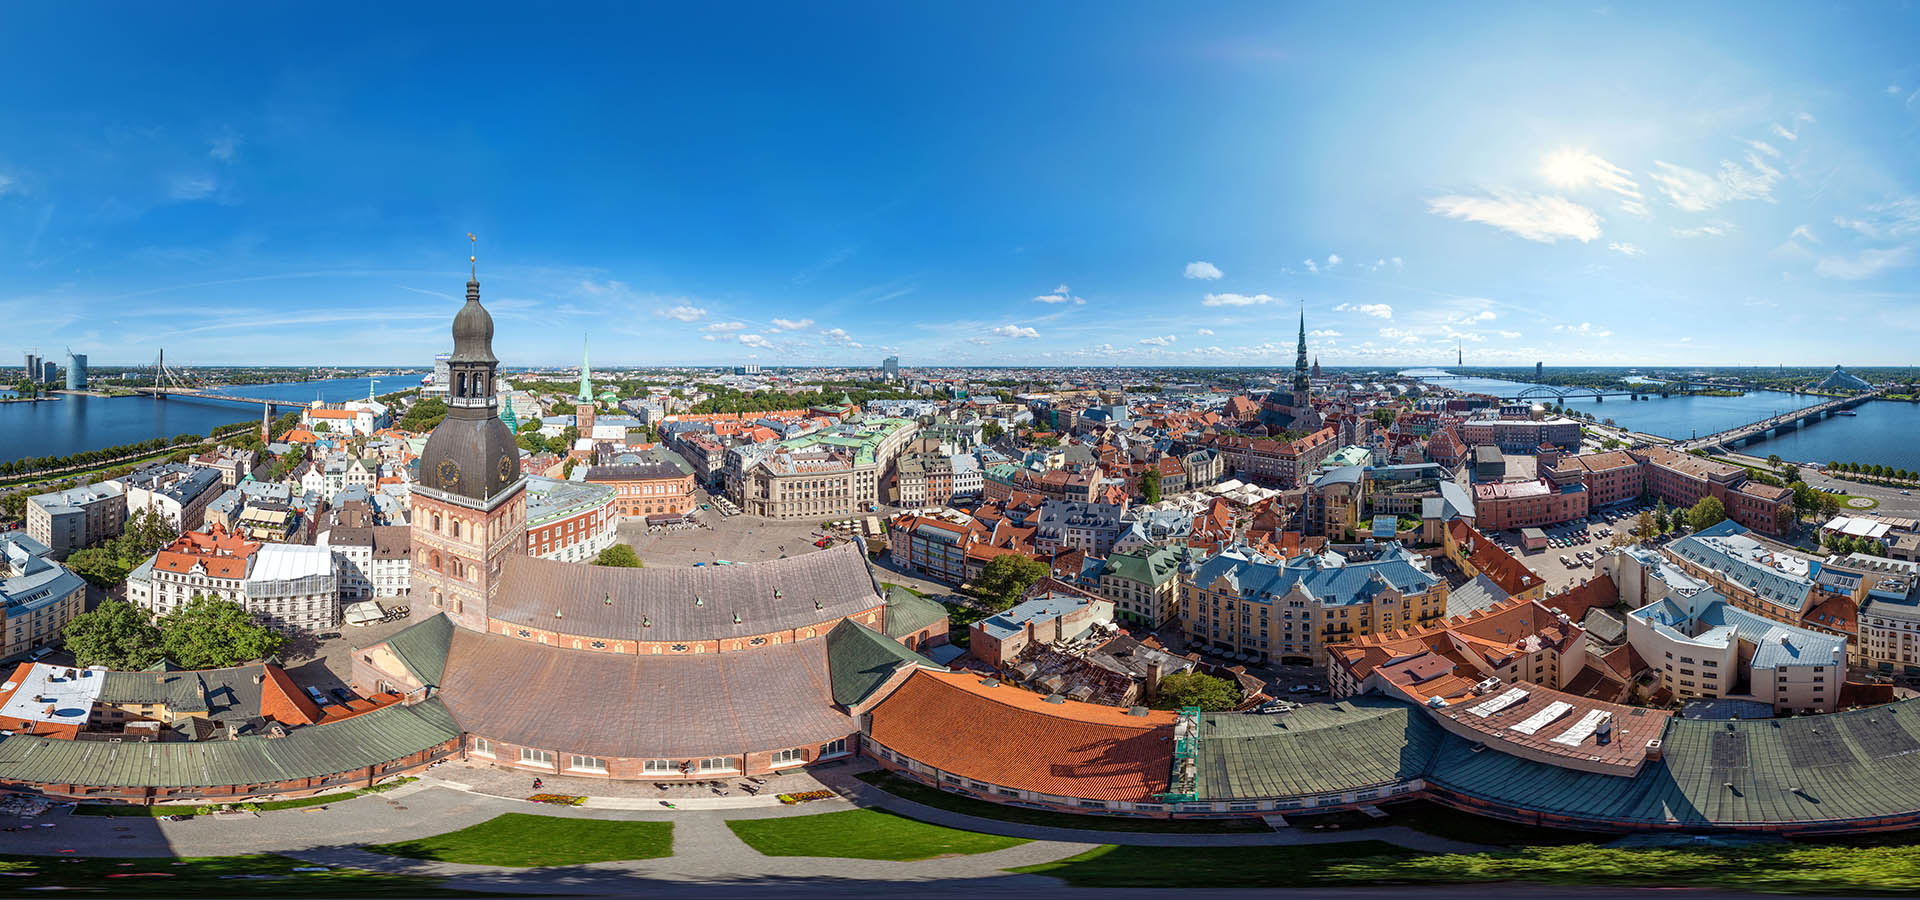 Old_Riga_Latvia_aerial_360_degree_panorama_OCEAN.LV_